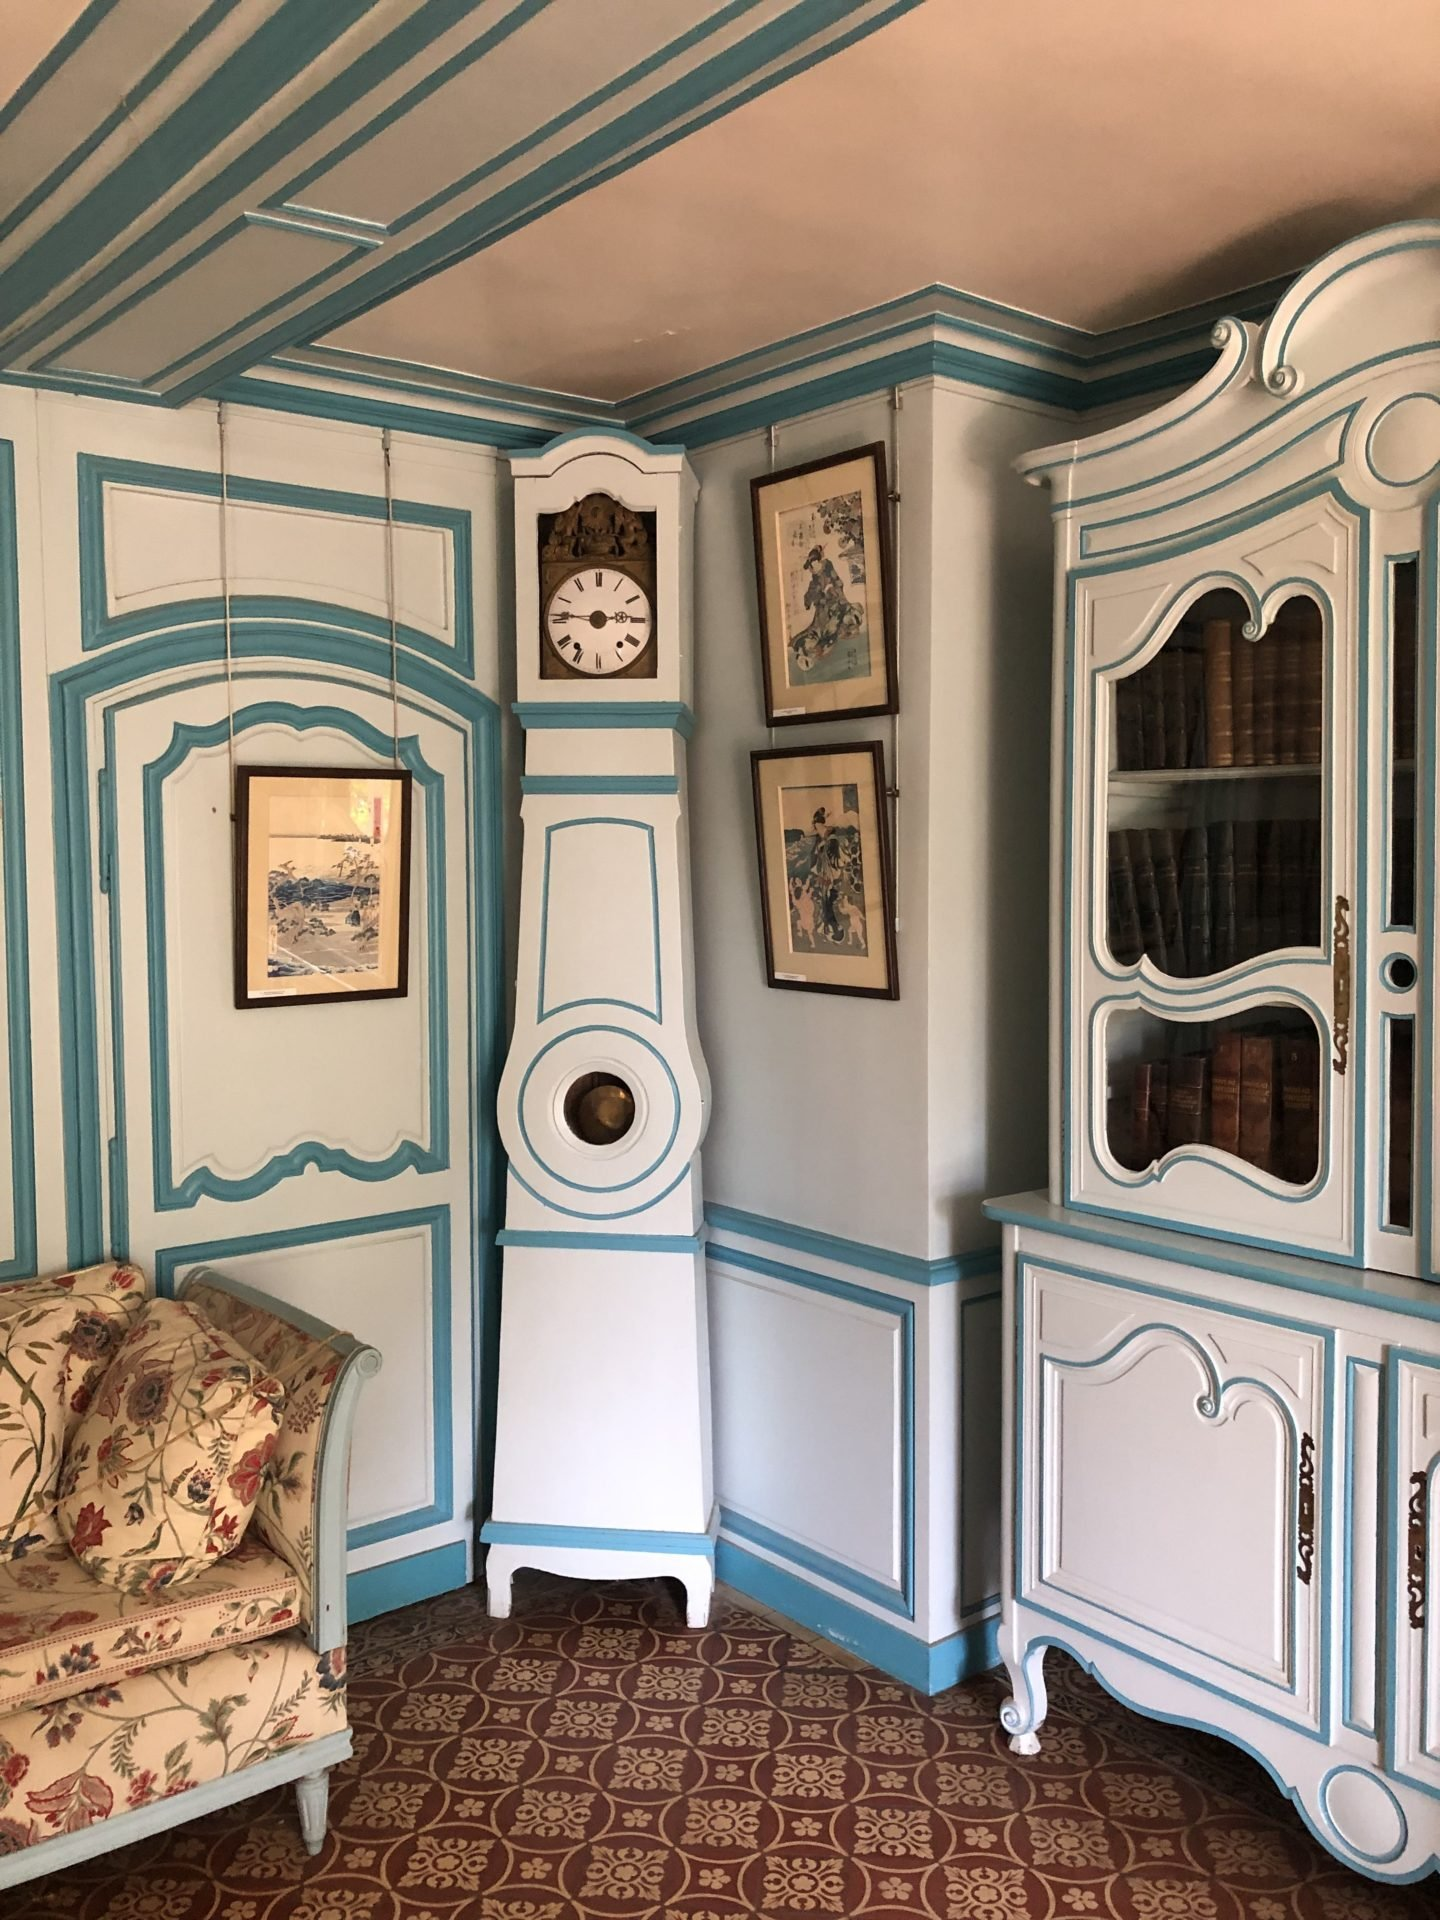 The blue Japanese sitting room of Claude Monet's home